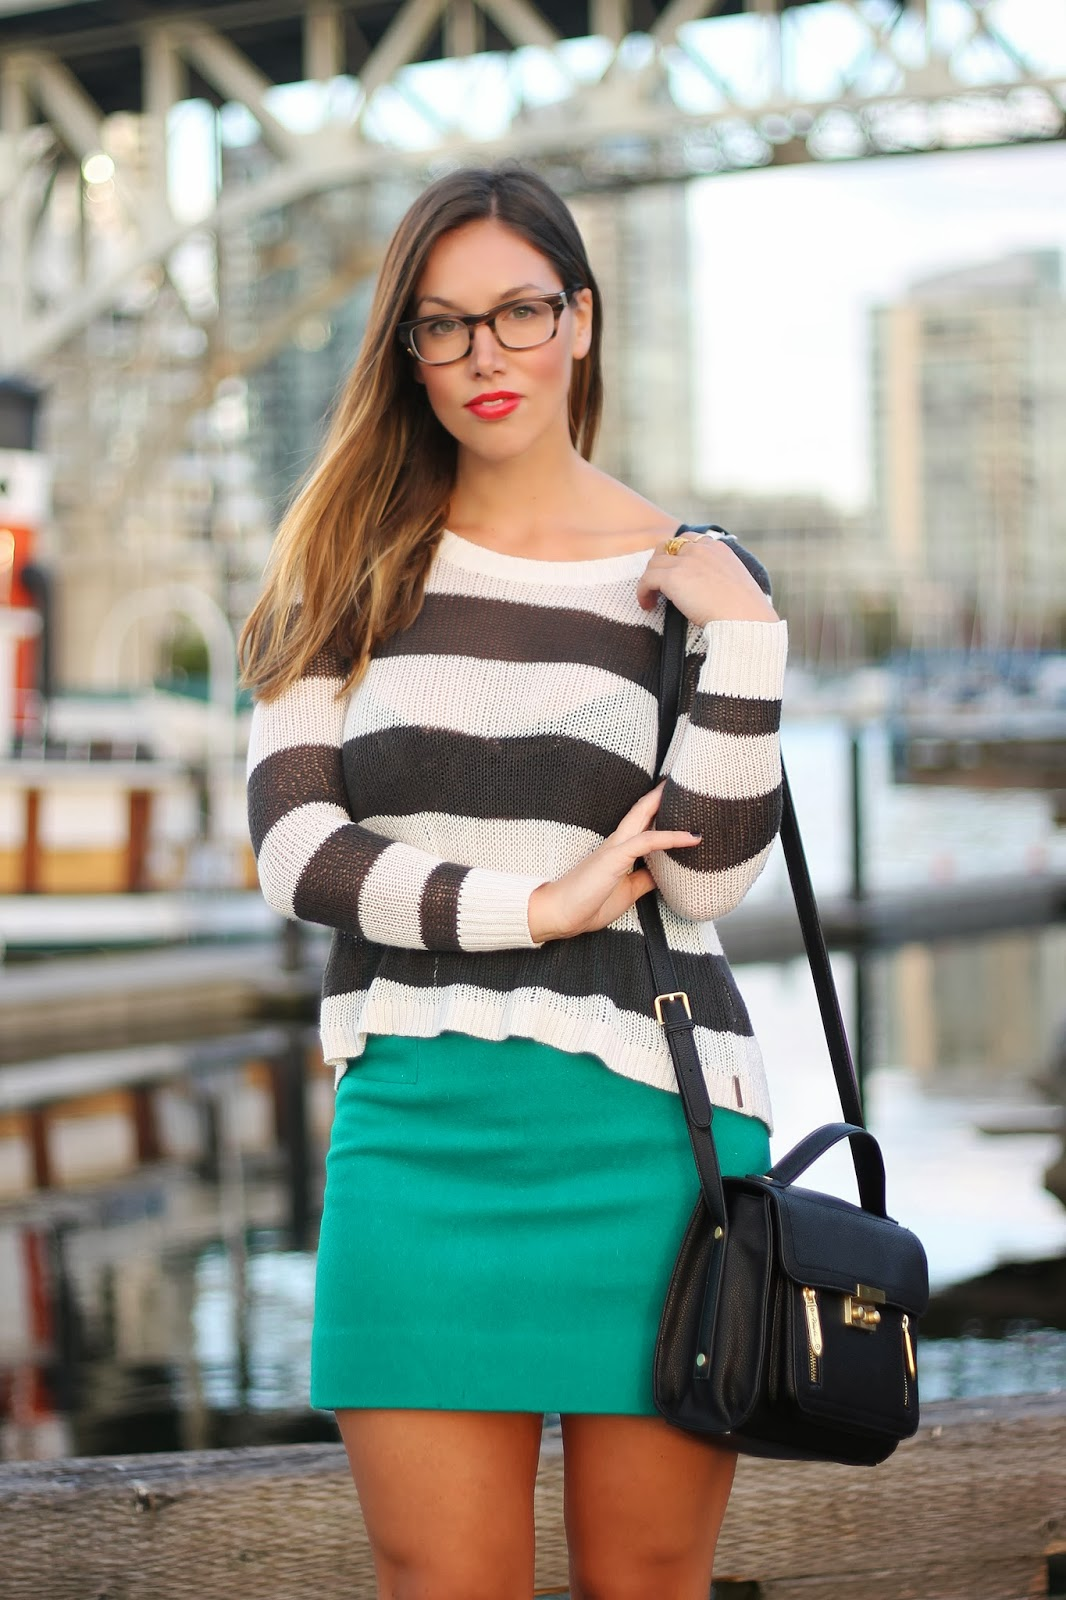 to vogue or bust, vancouver style blog, vancouver fashion blog, vancouver fashion, canadian fashion blog, alexandra grant, fall style, fall fashion, nautical stripes, billabong sweater, j.crew skirt, h&m heels, phillip lim for target bag, clearly contacts glasses, brooklyn designs ring